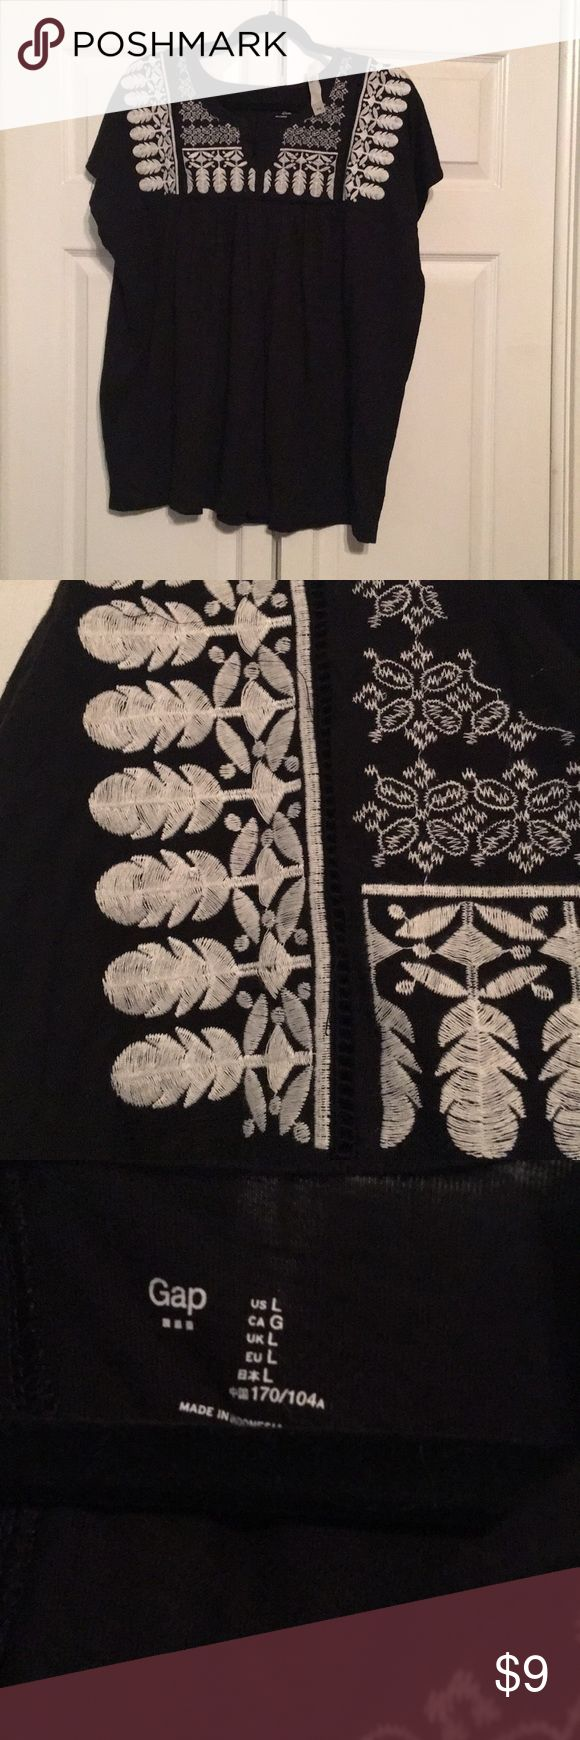 Black and White Embroidered Gap Short Sleeve Shirt Brand New with Tags Black and White Gap Embroidered Short Sleeve Shirt GAP Tops Tees - Short Sleeve